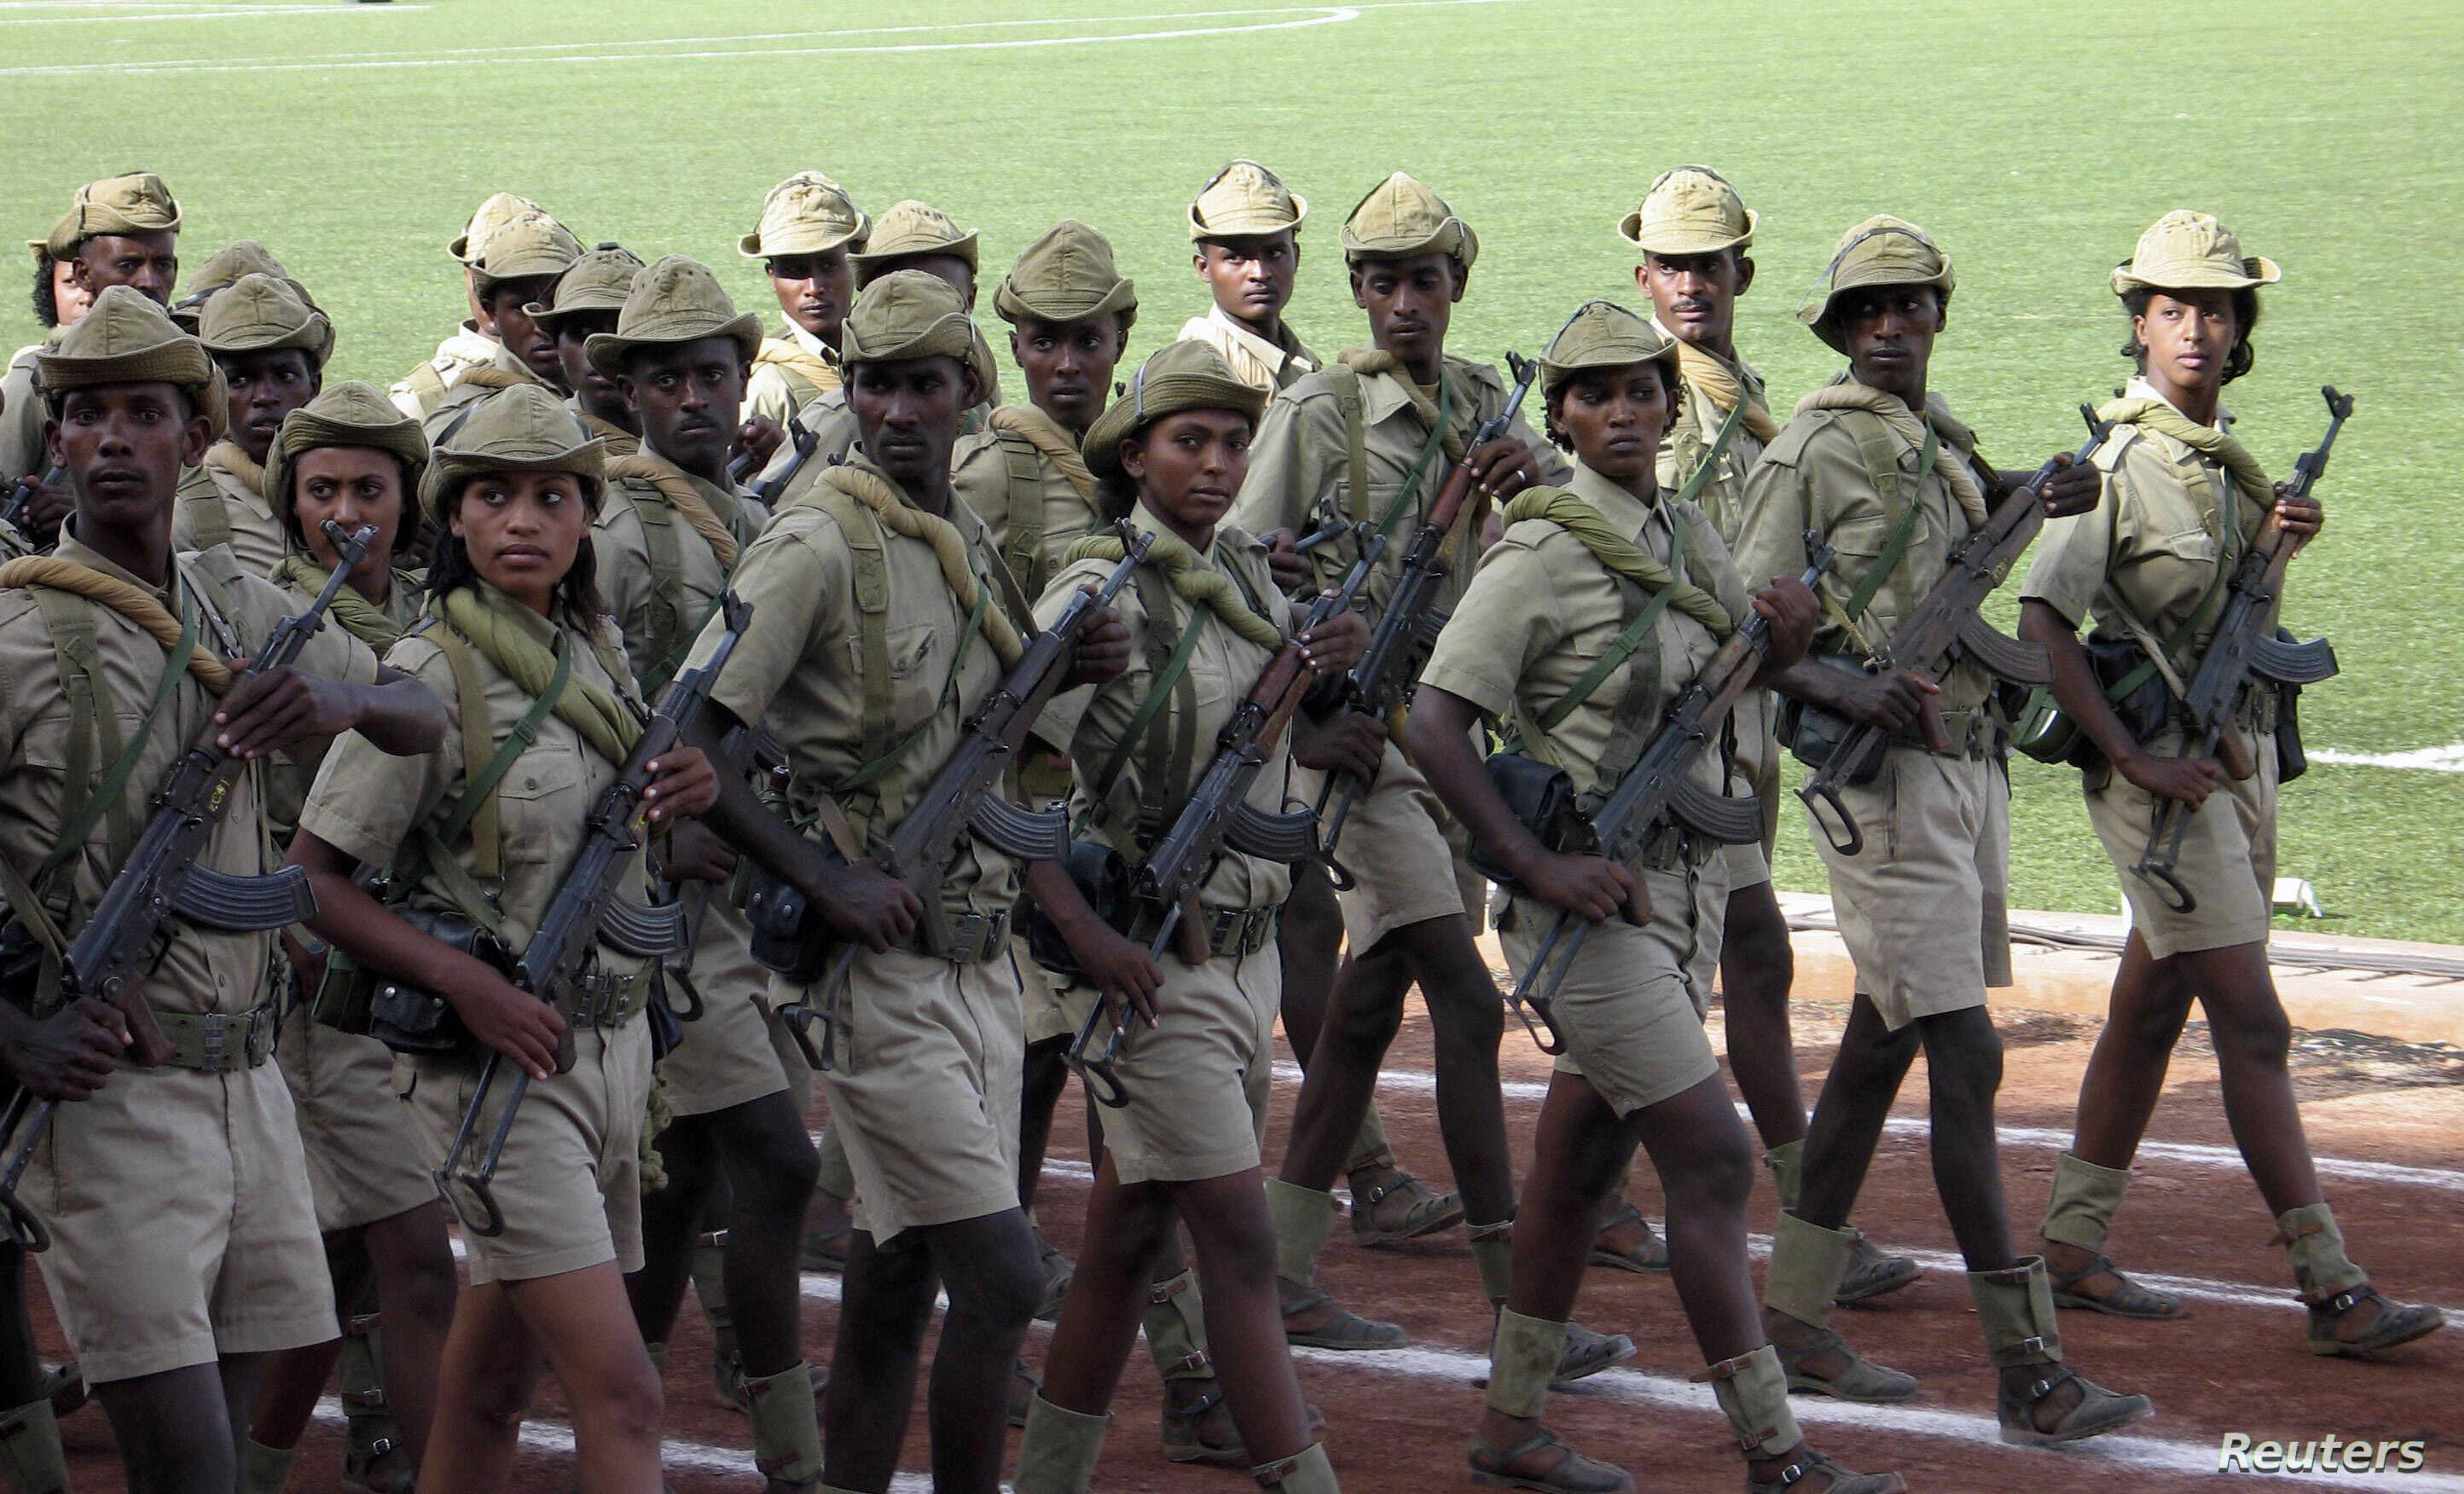 Report: Eritrean High Schoolers Face Forced Labor, Abuse